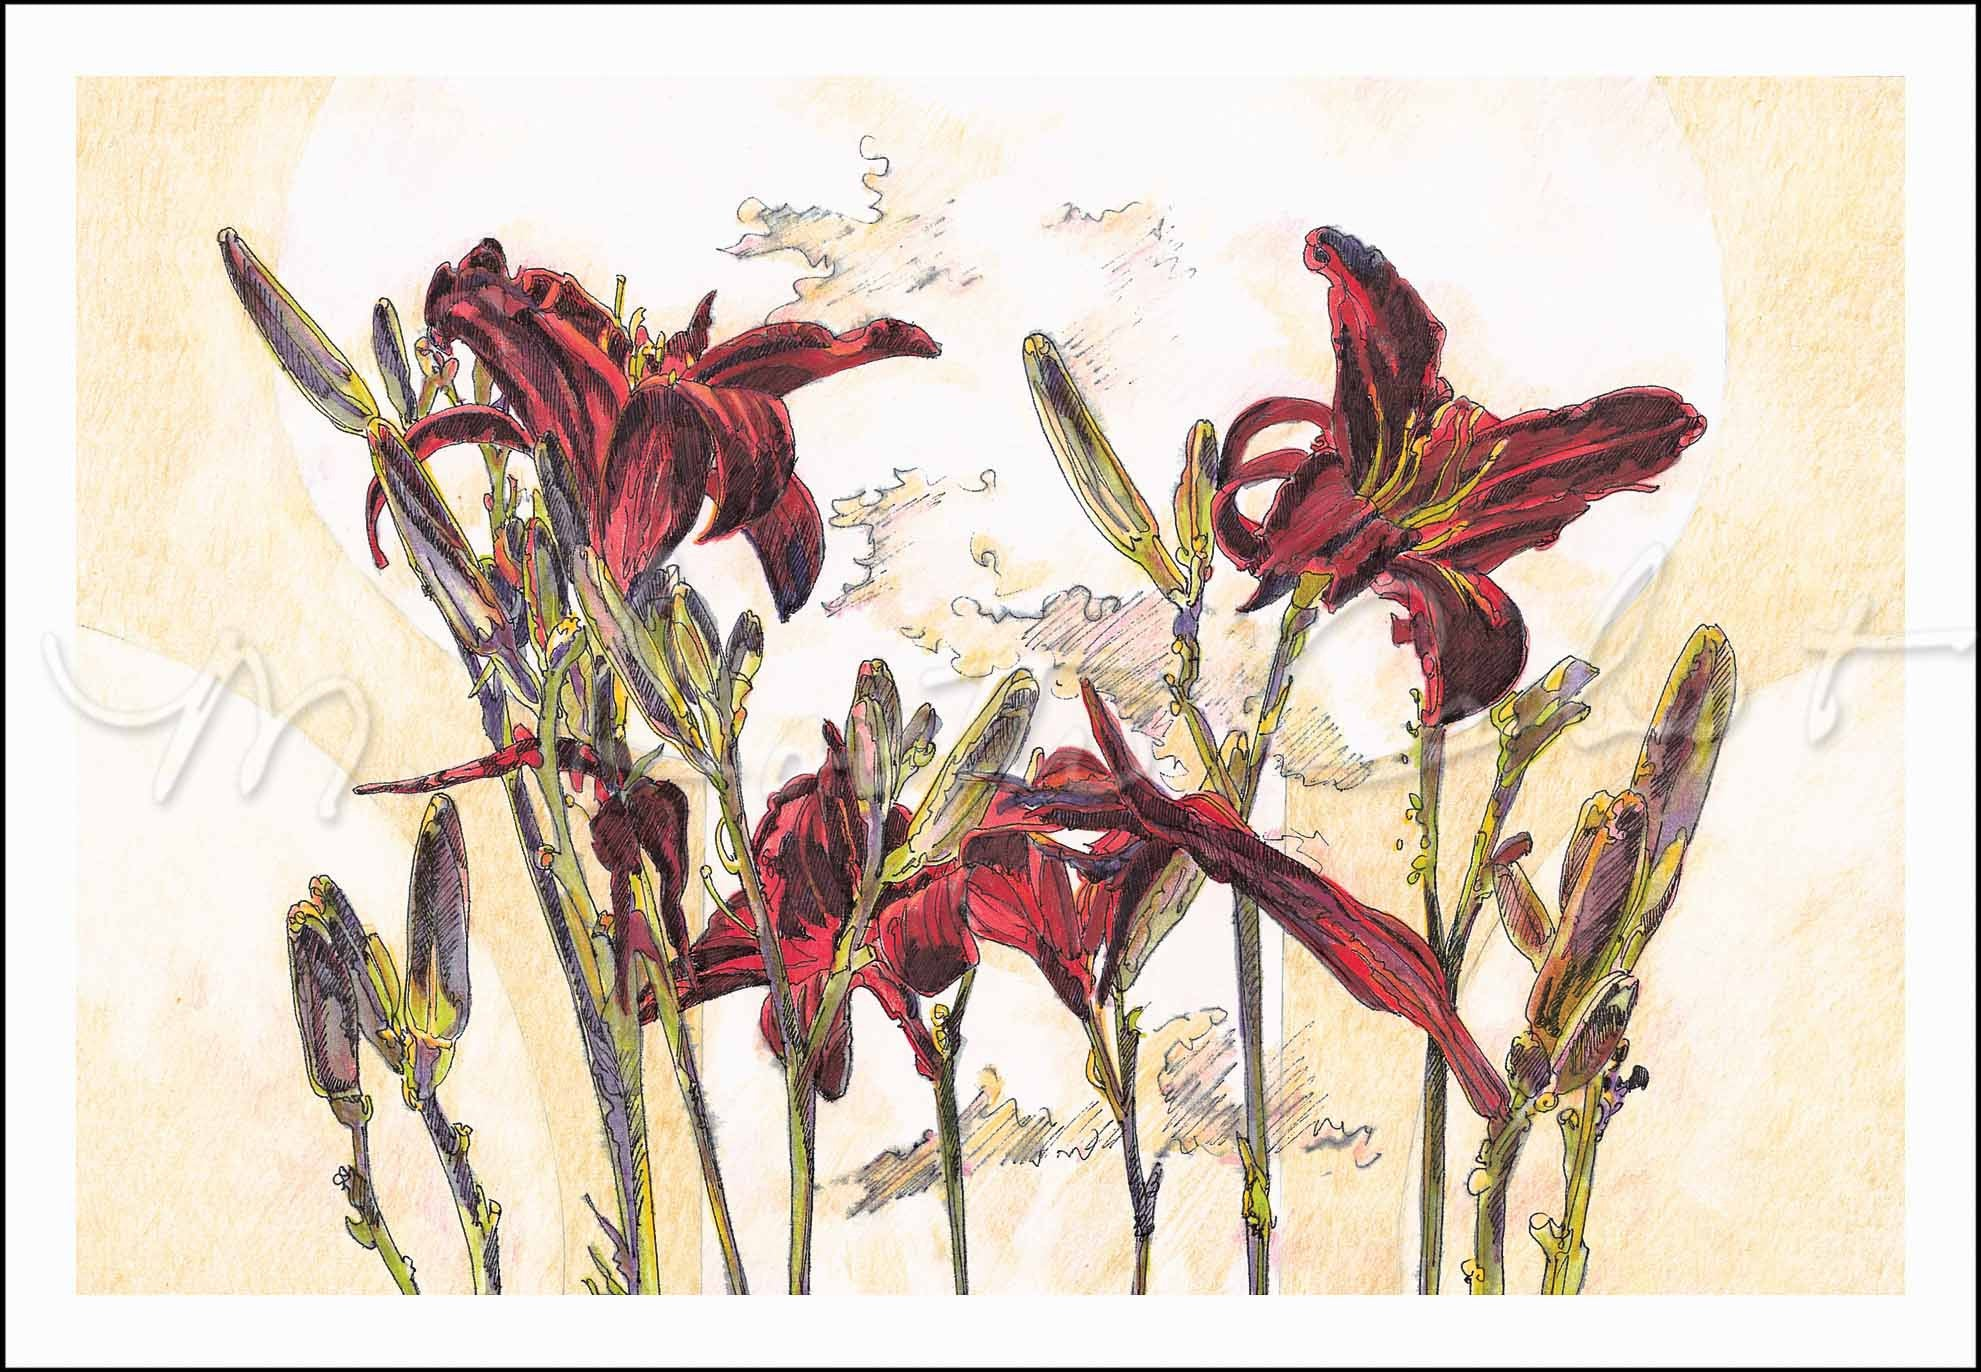 Lily - Almost Black Daylilies - Colored Pencil & Ink